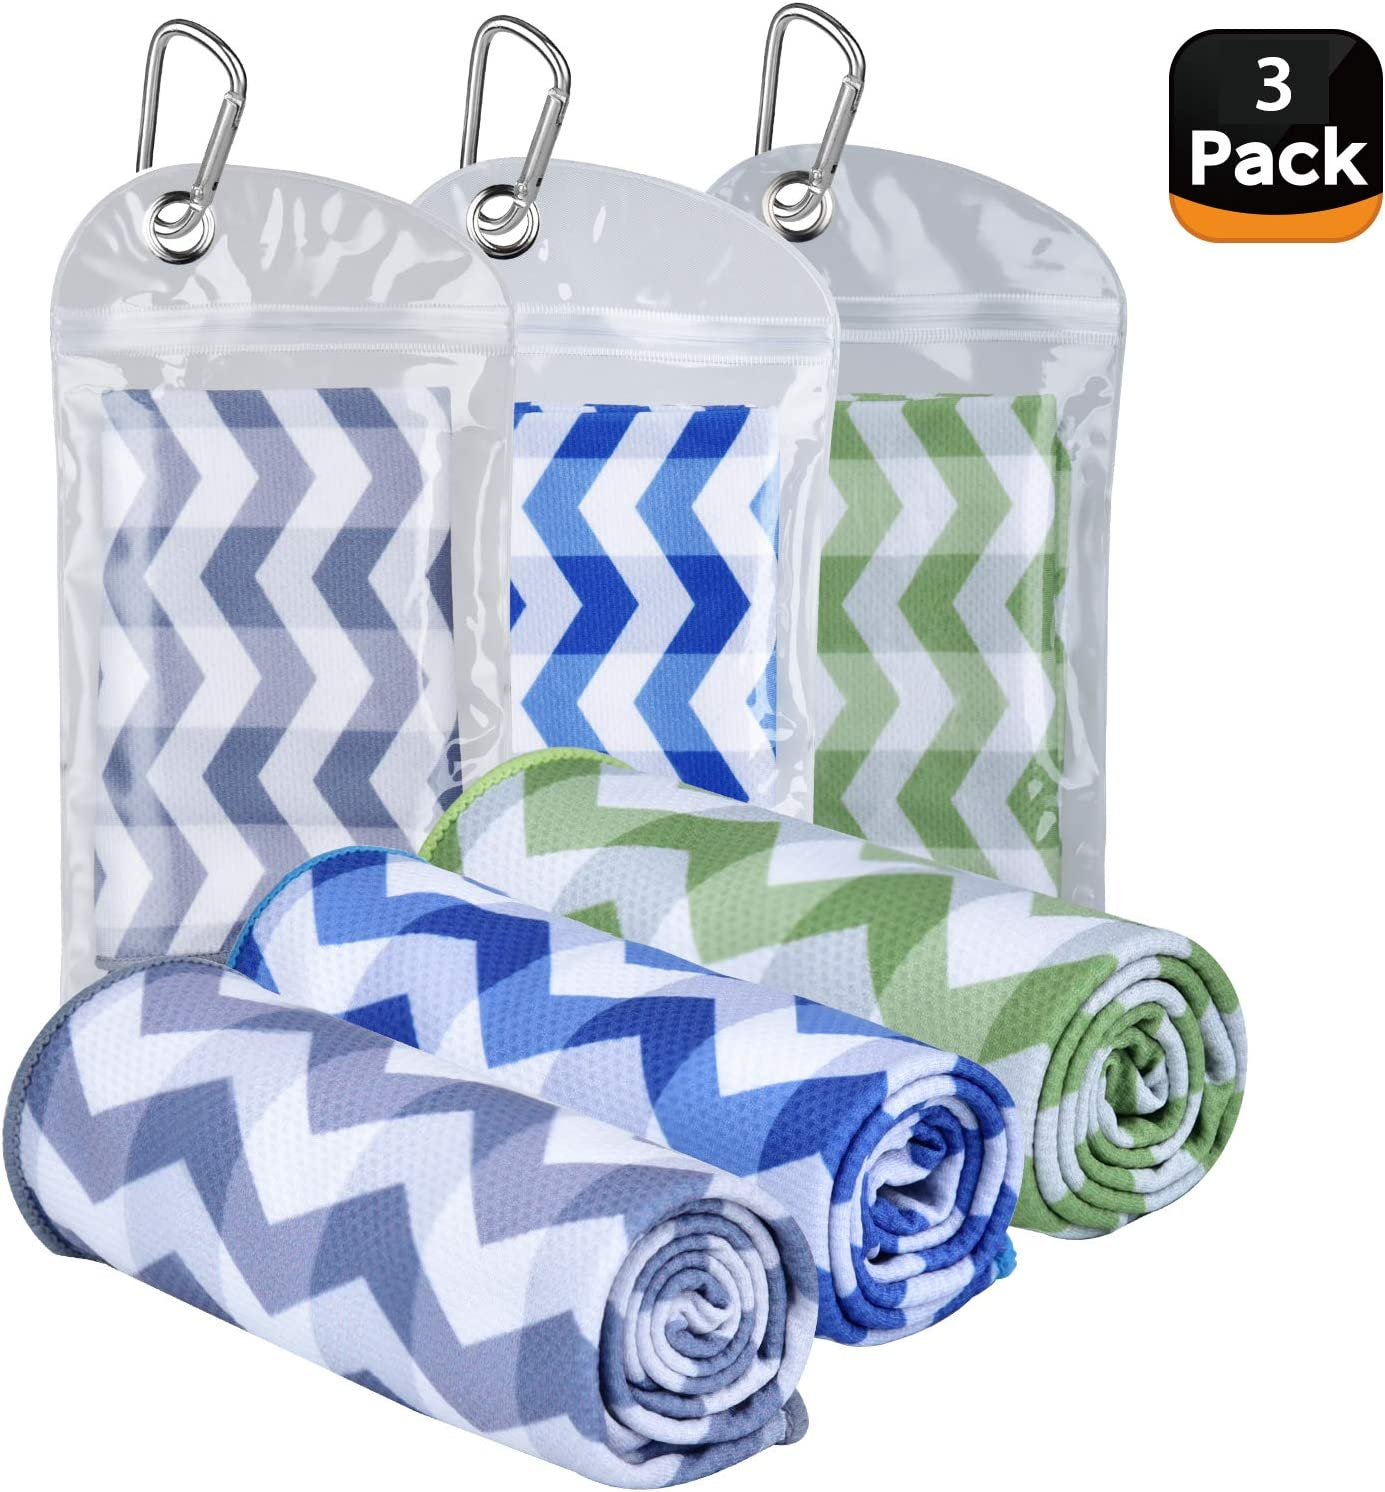 """Amgico 3 Pack Cooling Towel, Ice Towel Rapid Cold Microfiber Towels, (40""""x12"""") Instant Chilly Towels for Sports Gym Fitness Yoga Jogging Workout Enduring Running"""